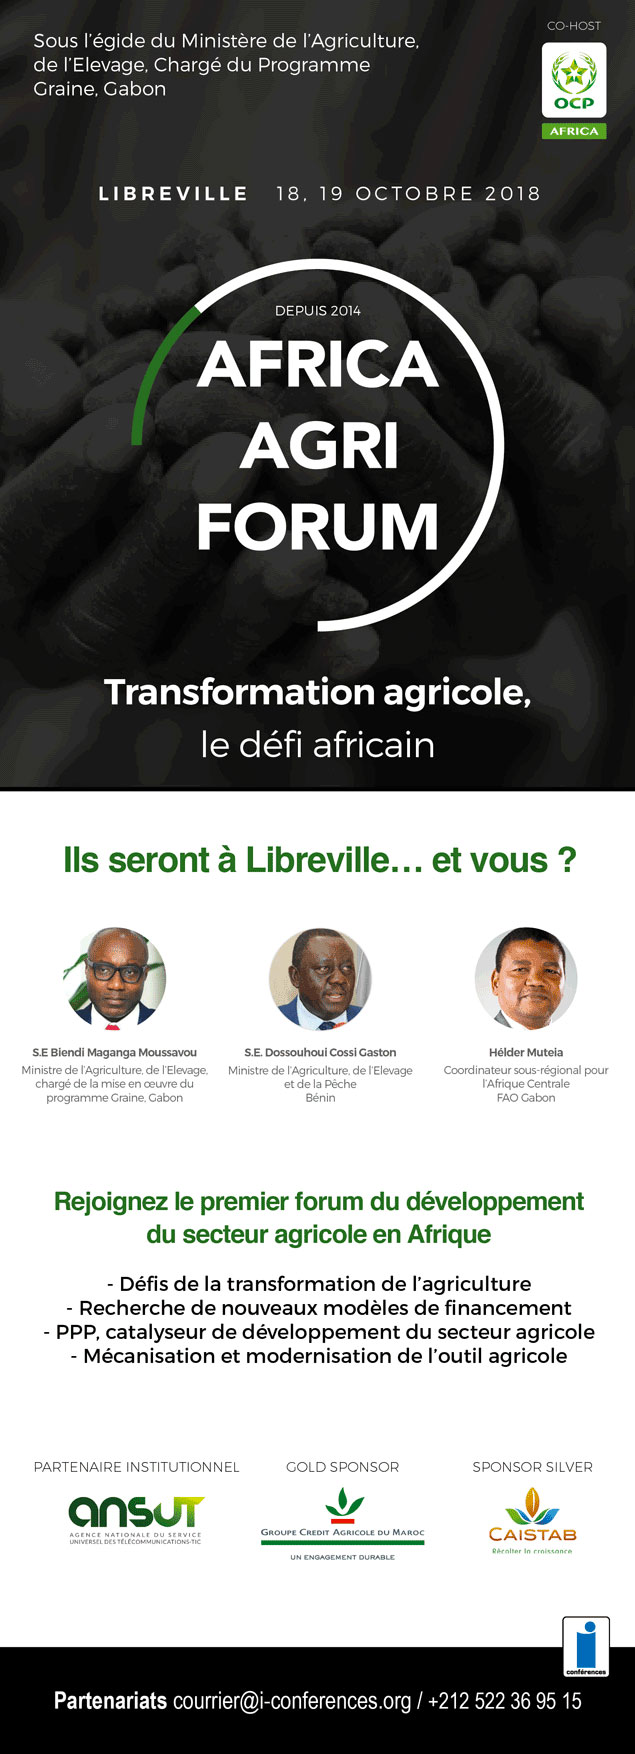 http://ads.weblogy.net/clients/Agenda/I-conferences/2018/Africa-Agri-Forum/images/AAF-2018.jpg